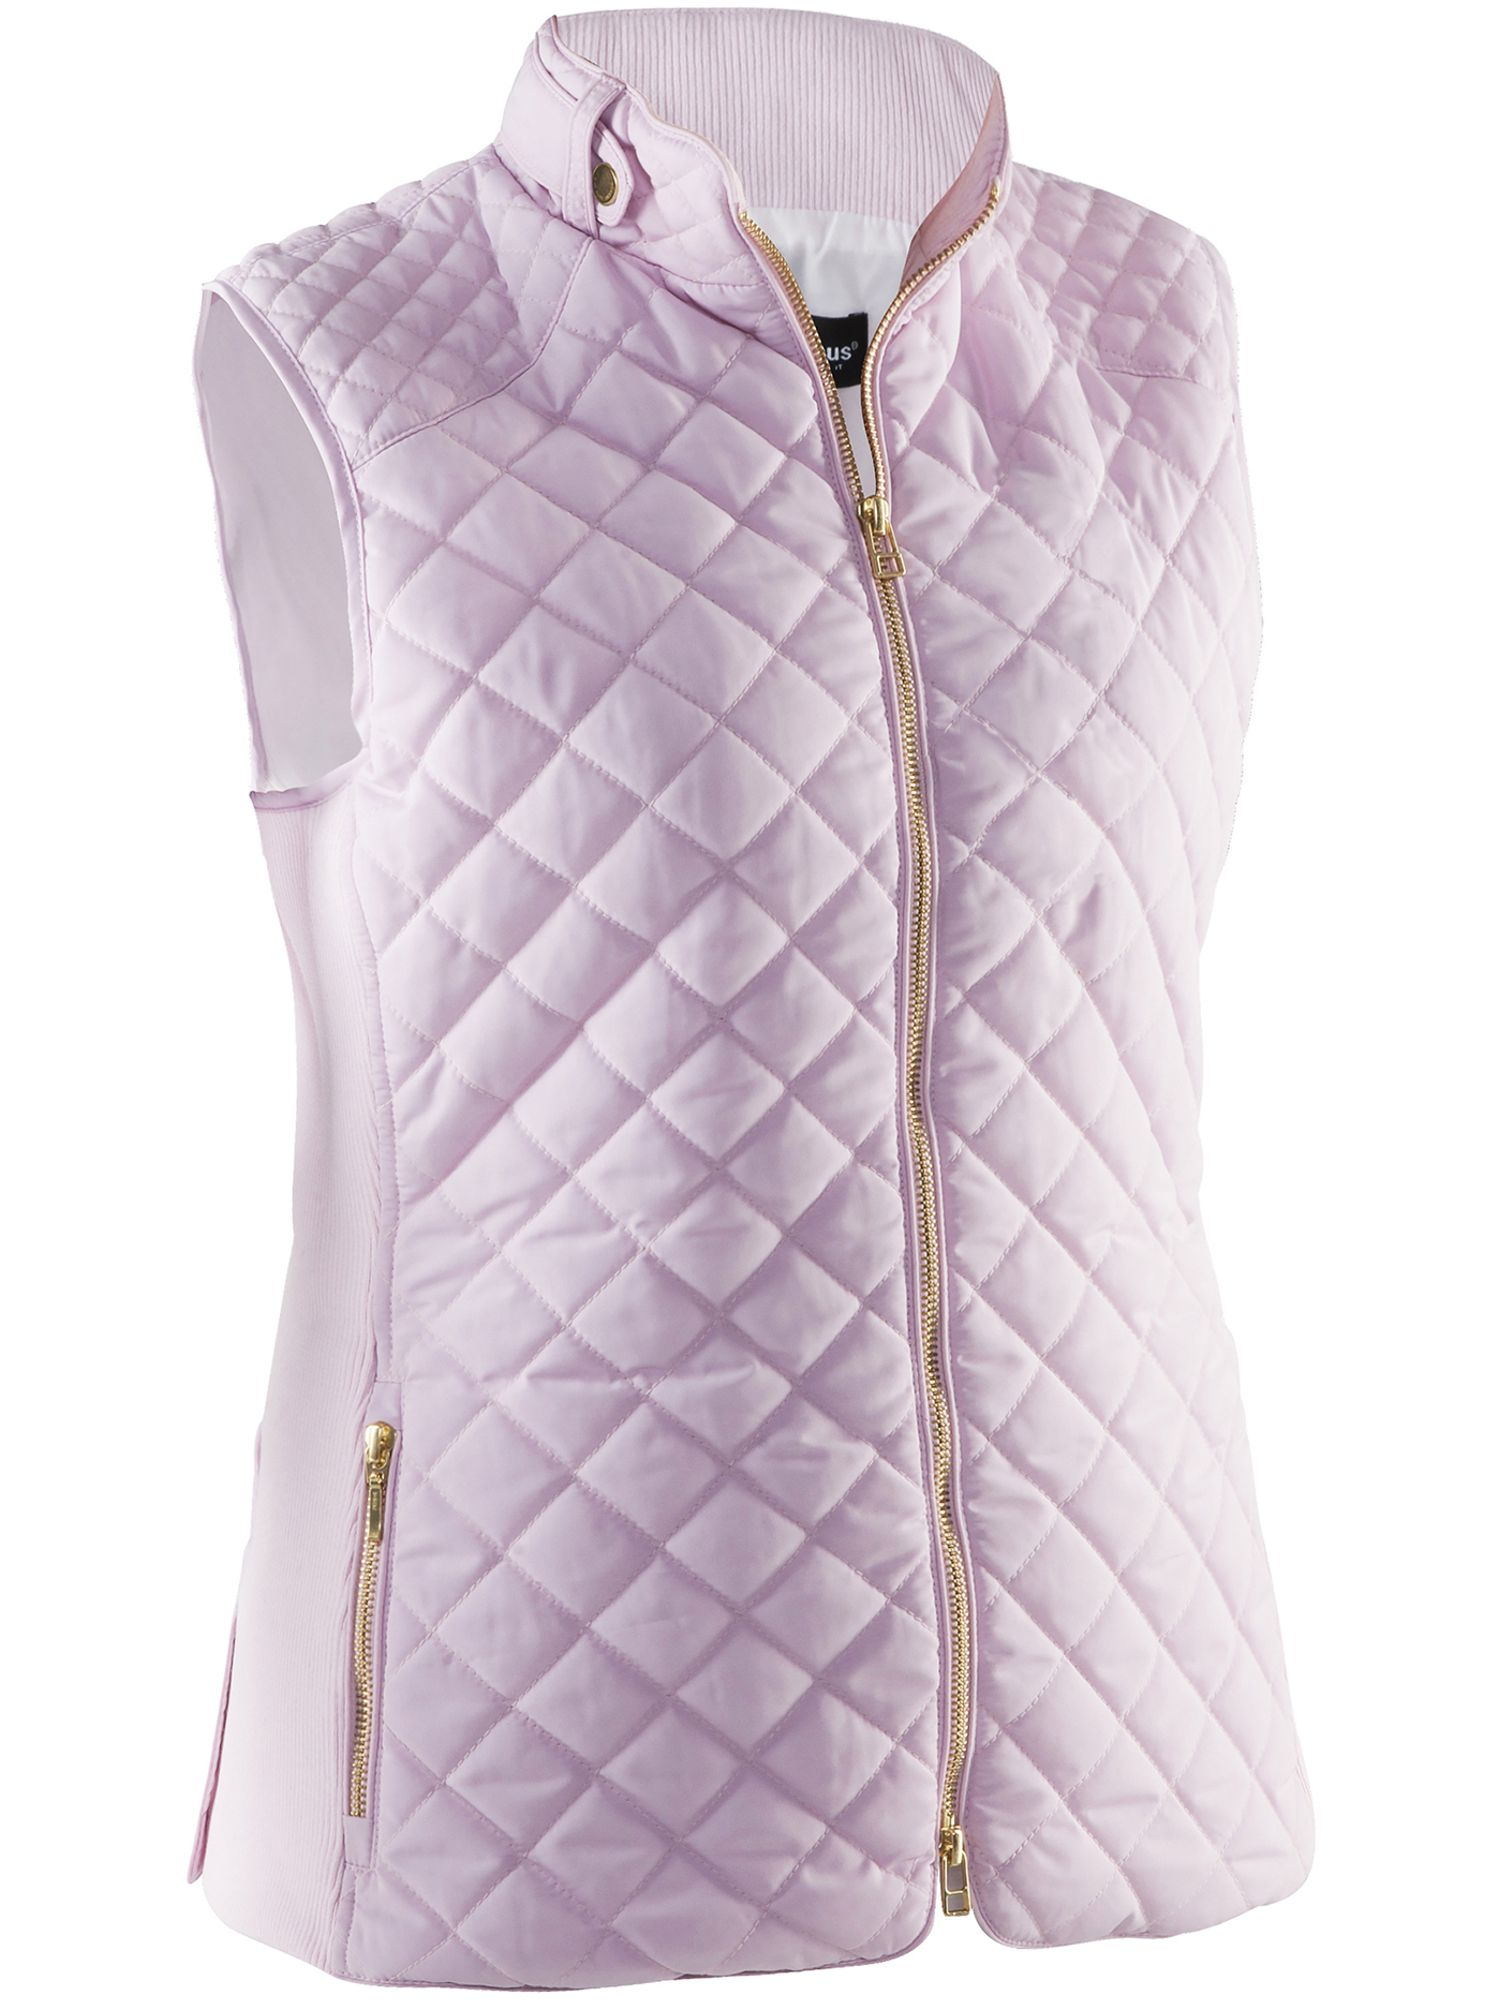 Abacus Abacus Avanti Quilted Gilet, Blossom